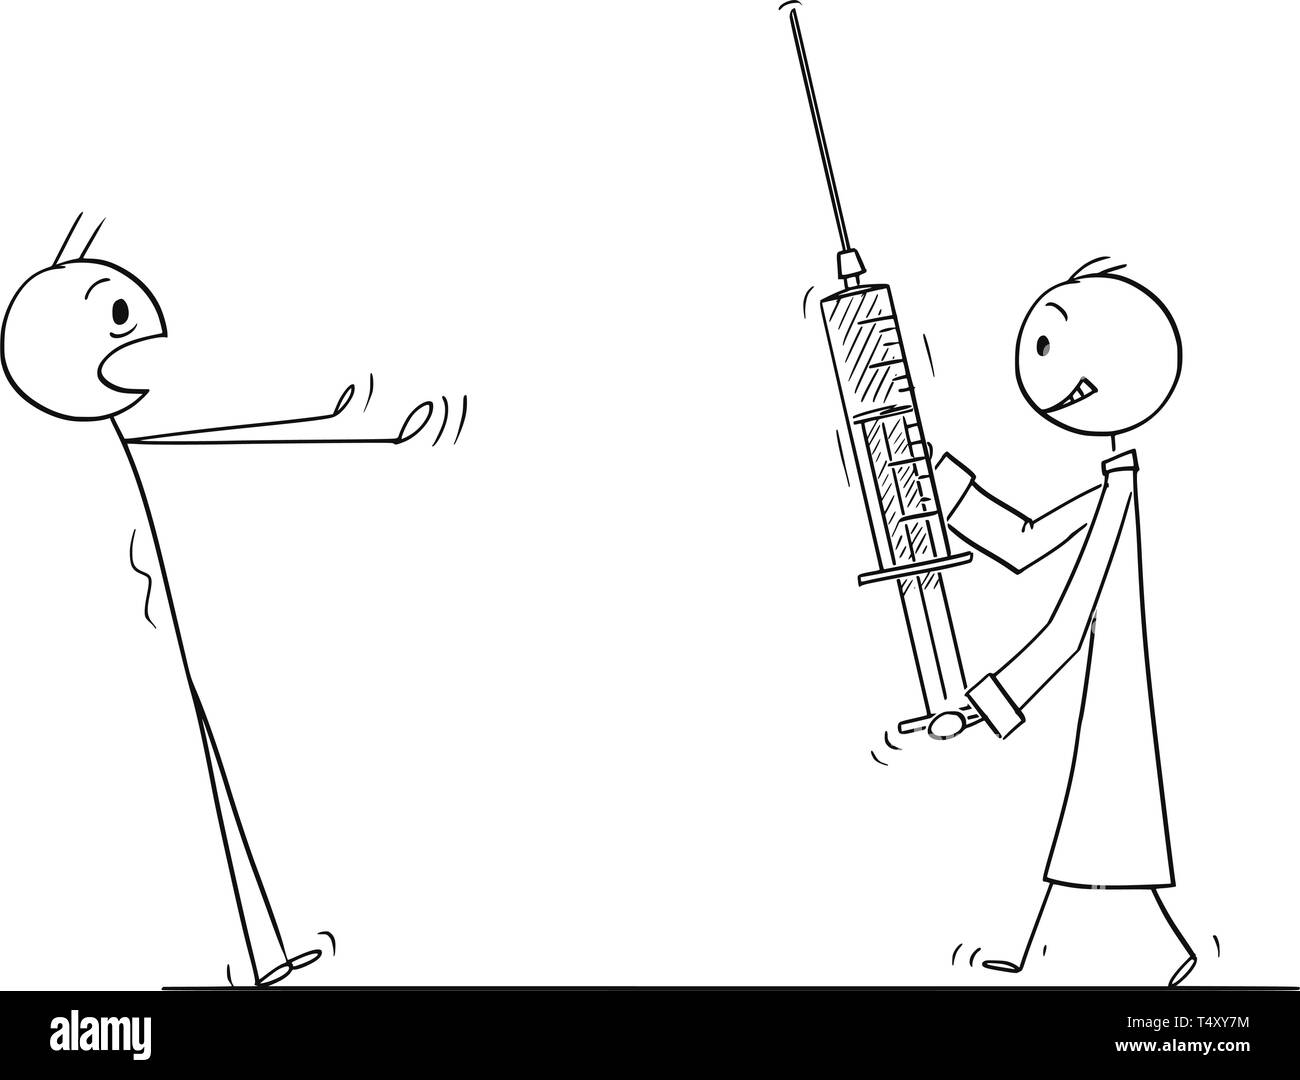 Cartoon stick figure drawing conceptual illustration of man stunned in panic looking at doctor coming with big injection or syringe. Concept of healthcare or vaccination. - Stock Image